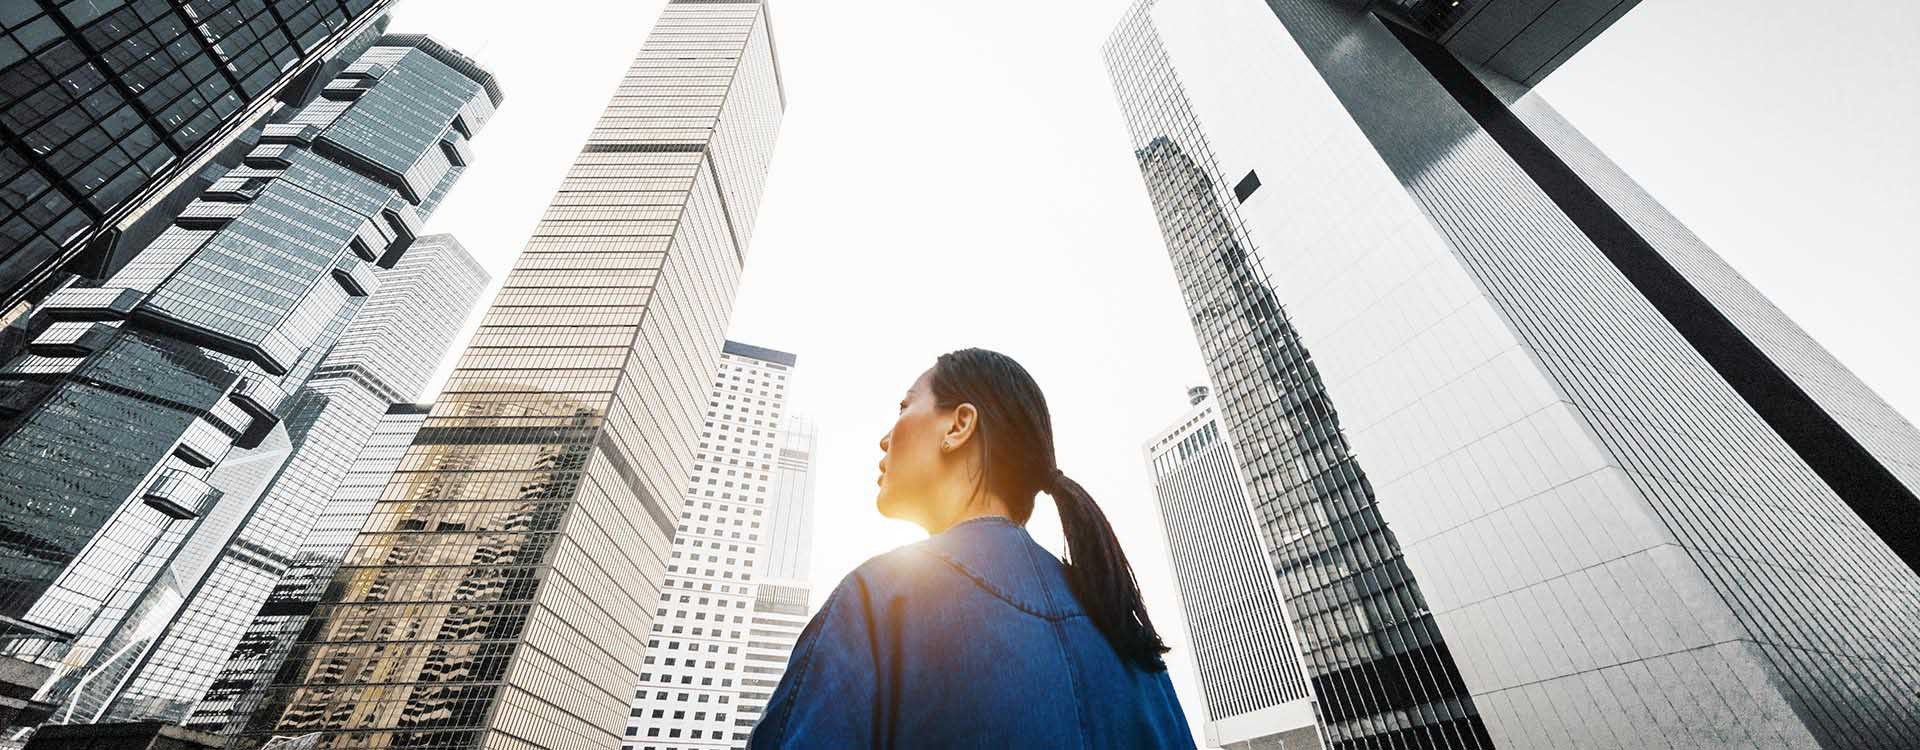 Female Professional Looking up at City Buildings